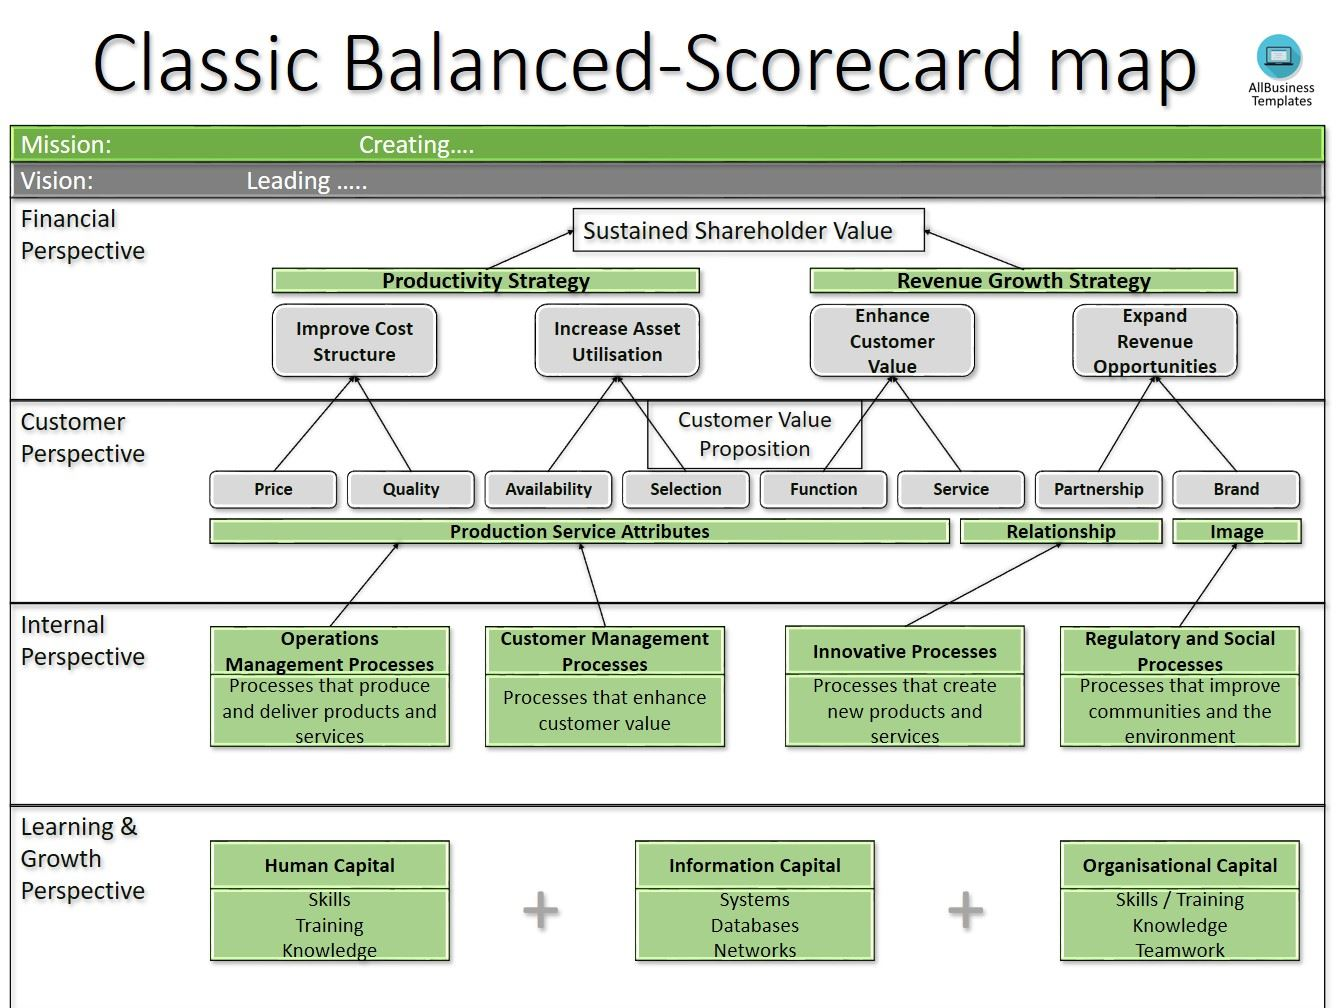 Business Balanced Scorecard template | Templates at ...